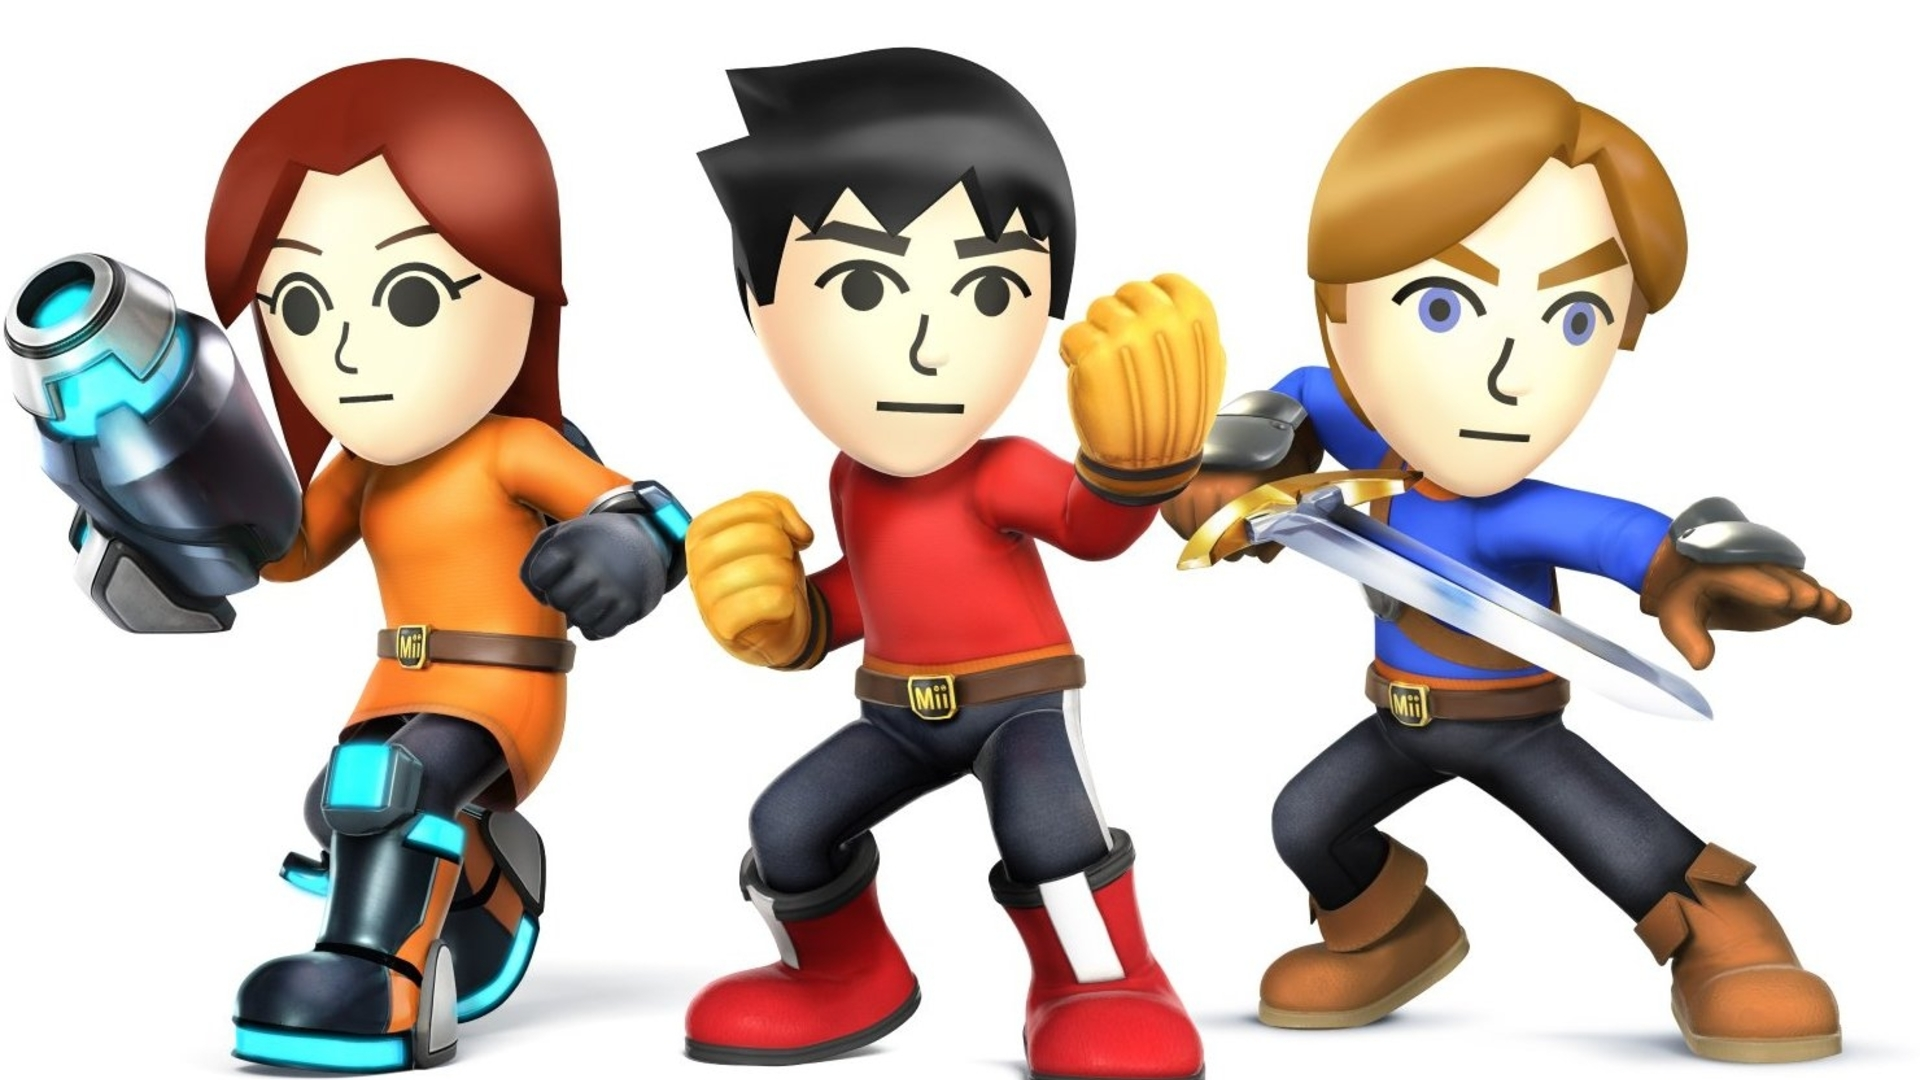 Nintendo to launch Mii character app for social media